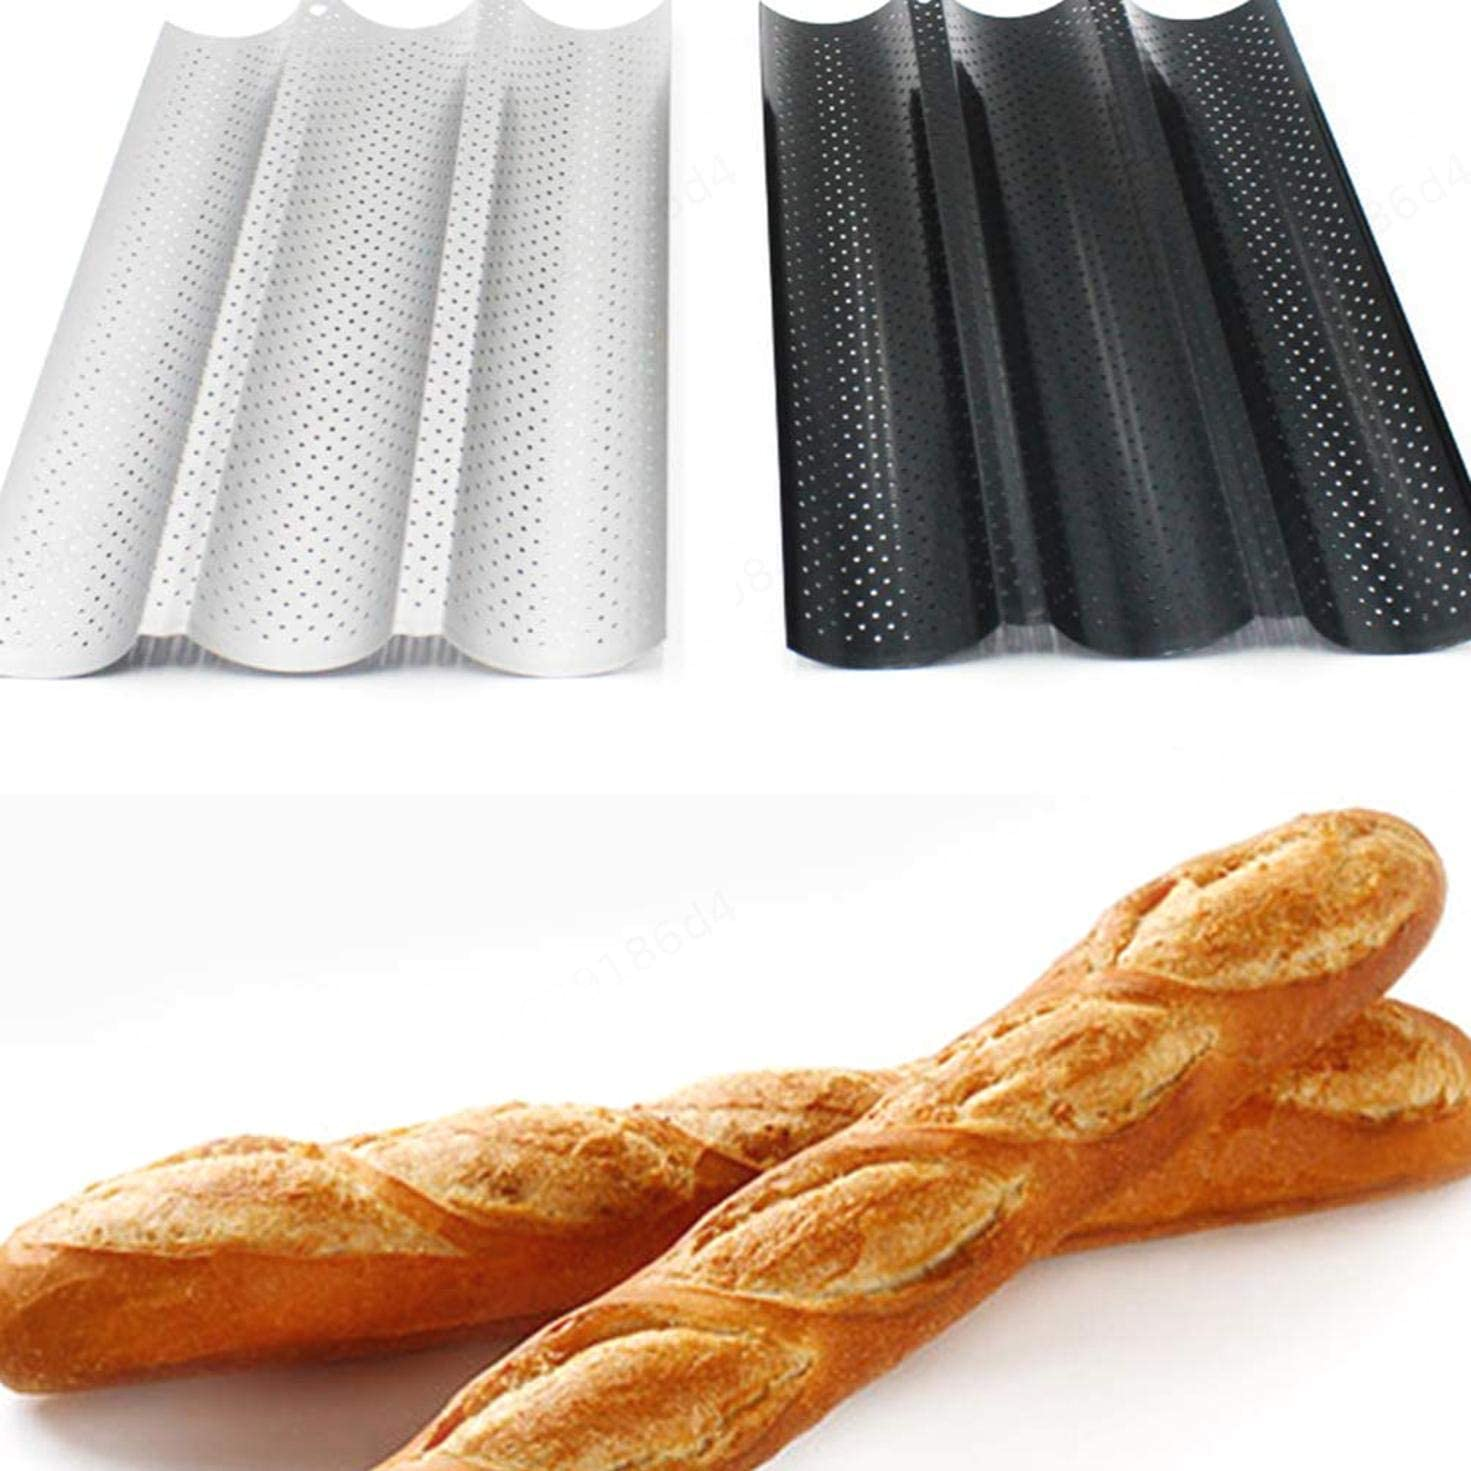 Nhouyao Bread Baking Tray French Bread Baking Pans Non Stick Baguette Loaf Mold Frame Rack For